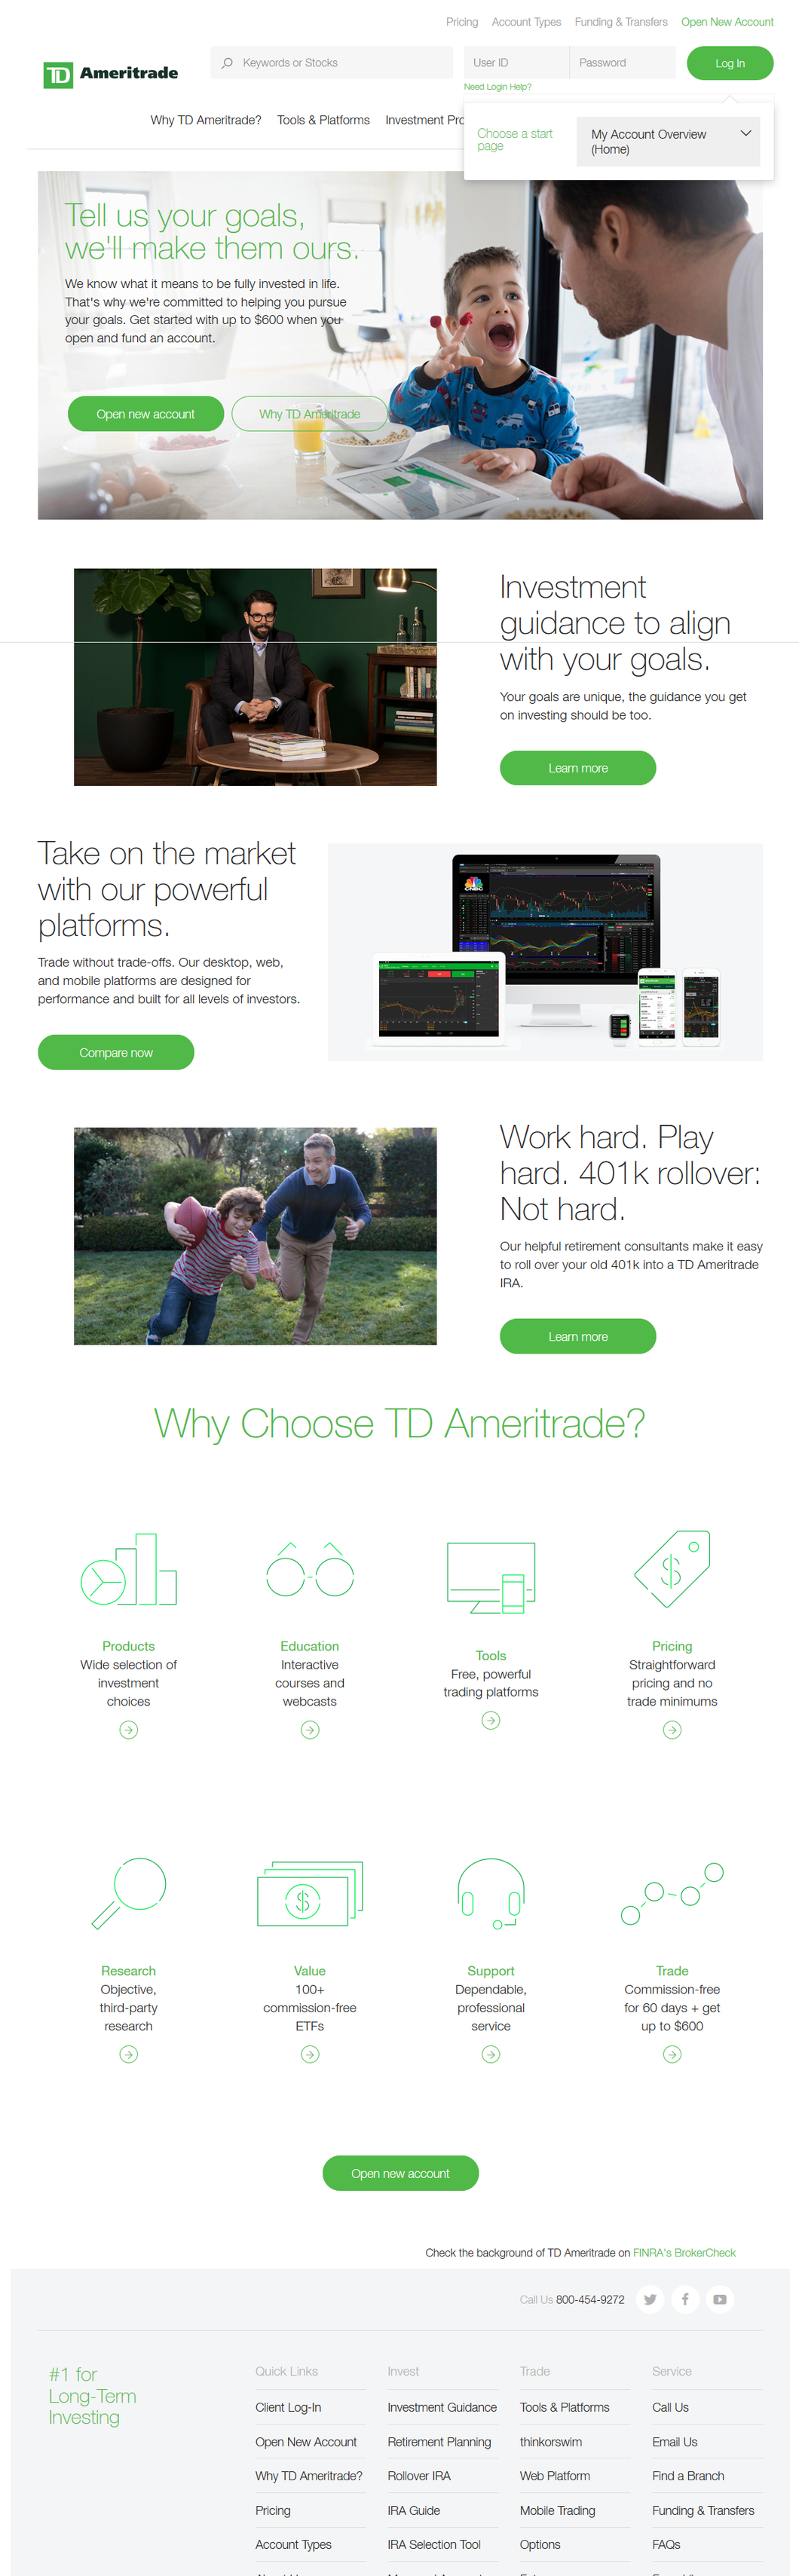 log-in page td ameritrade